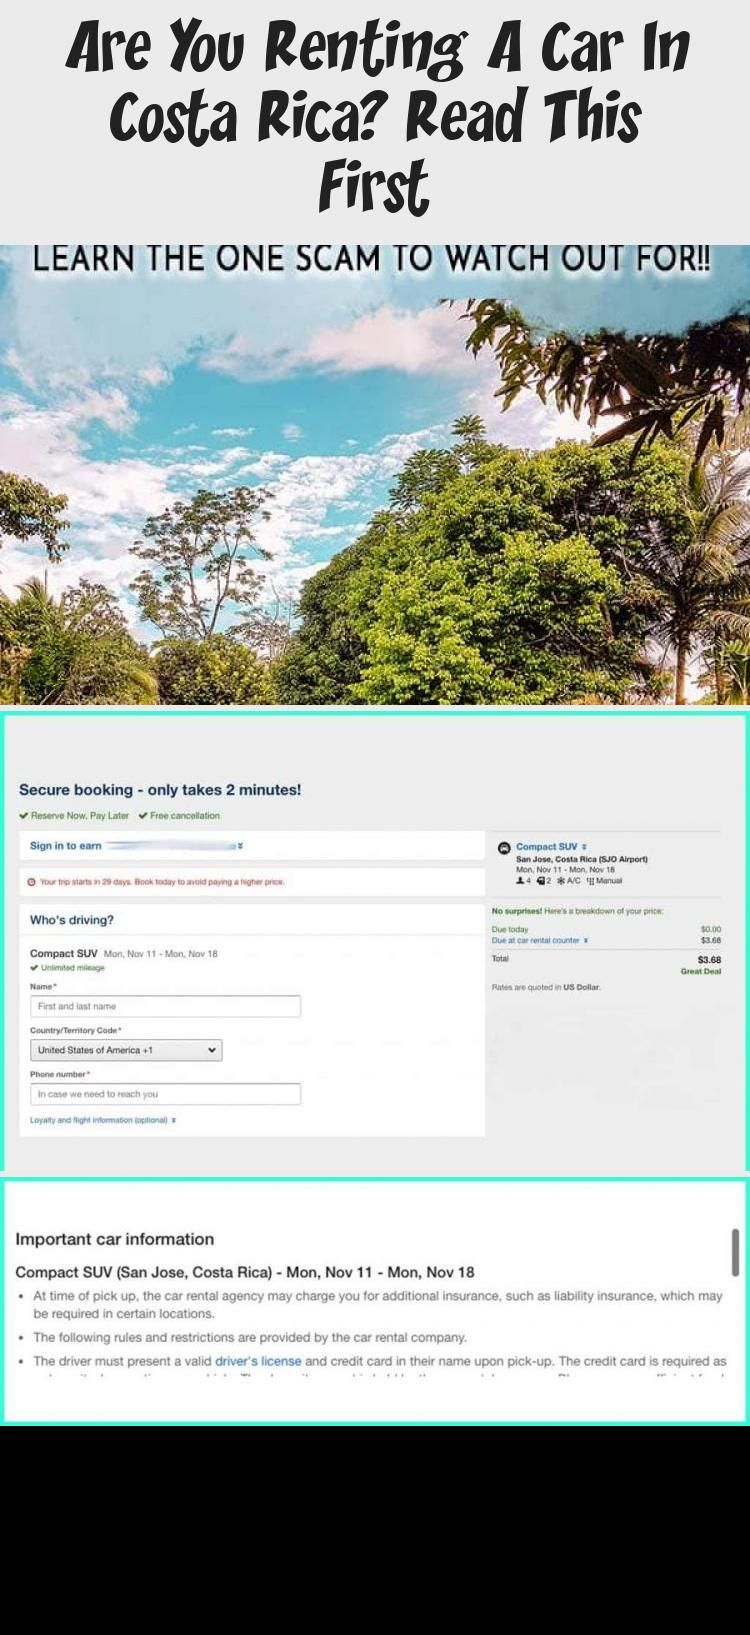 Are You Renting A Car In Costa Rica? Read This First in